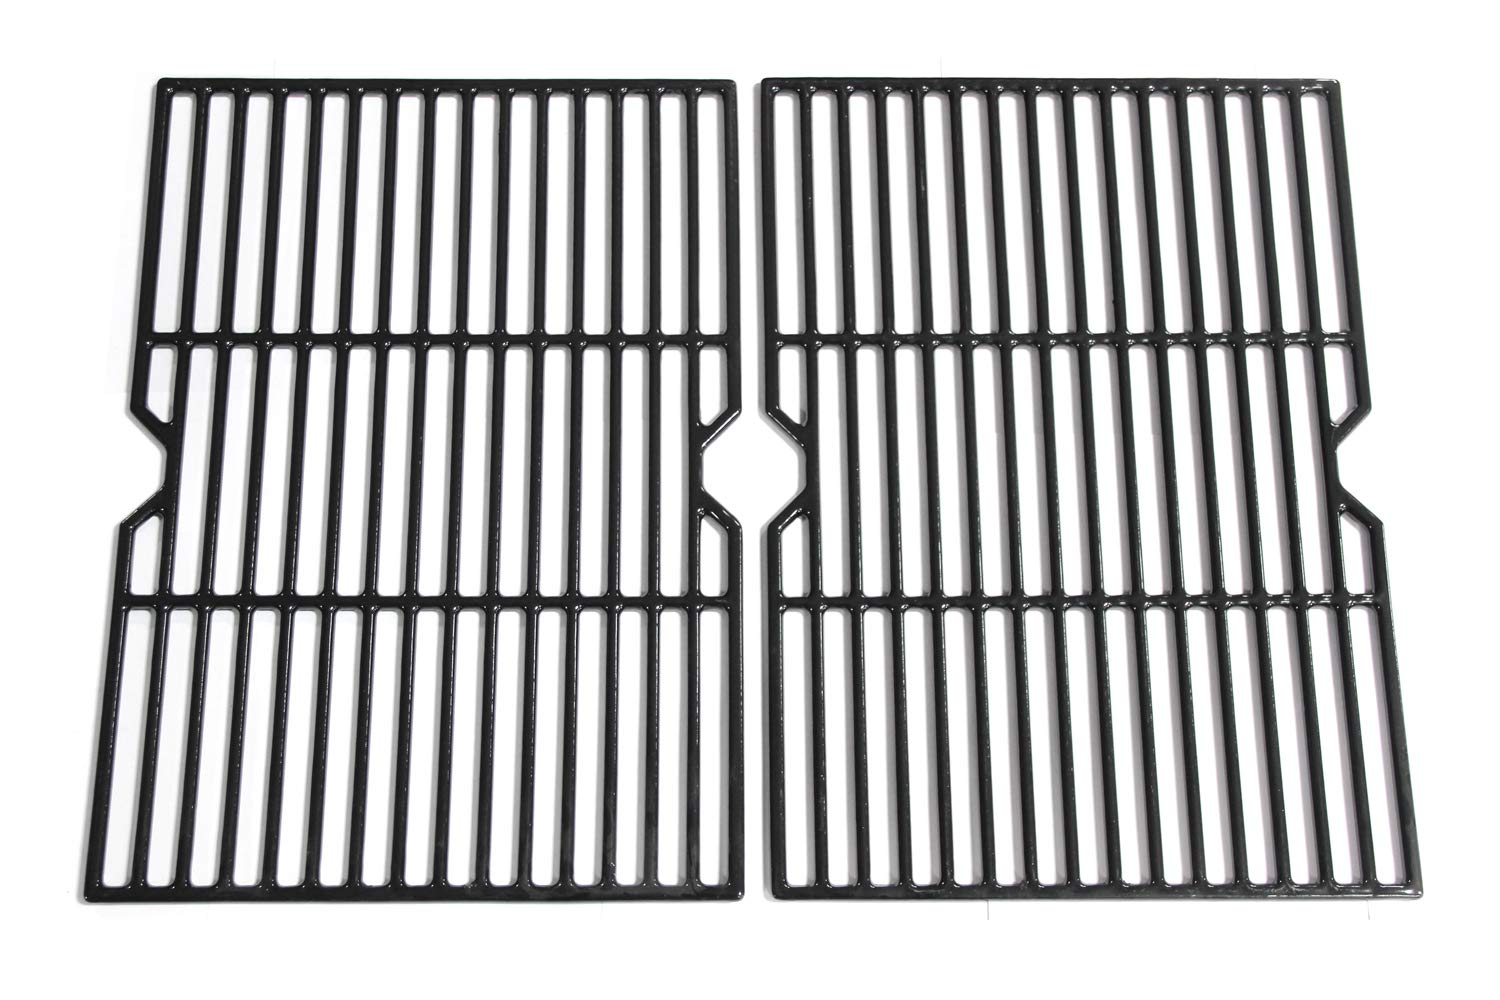 Hongso 18 1/4 Inch Porcelain Coated Cast Iron Grill Grate Cooking Grid Replacement for Charbroil 80005665, CG-65P-CI, Thermos, Uniflame, Master Forge Gas Grill, g515-00b5-w1, 2-Pack, (PCF652) by Hongso